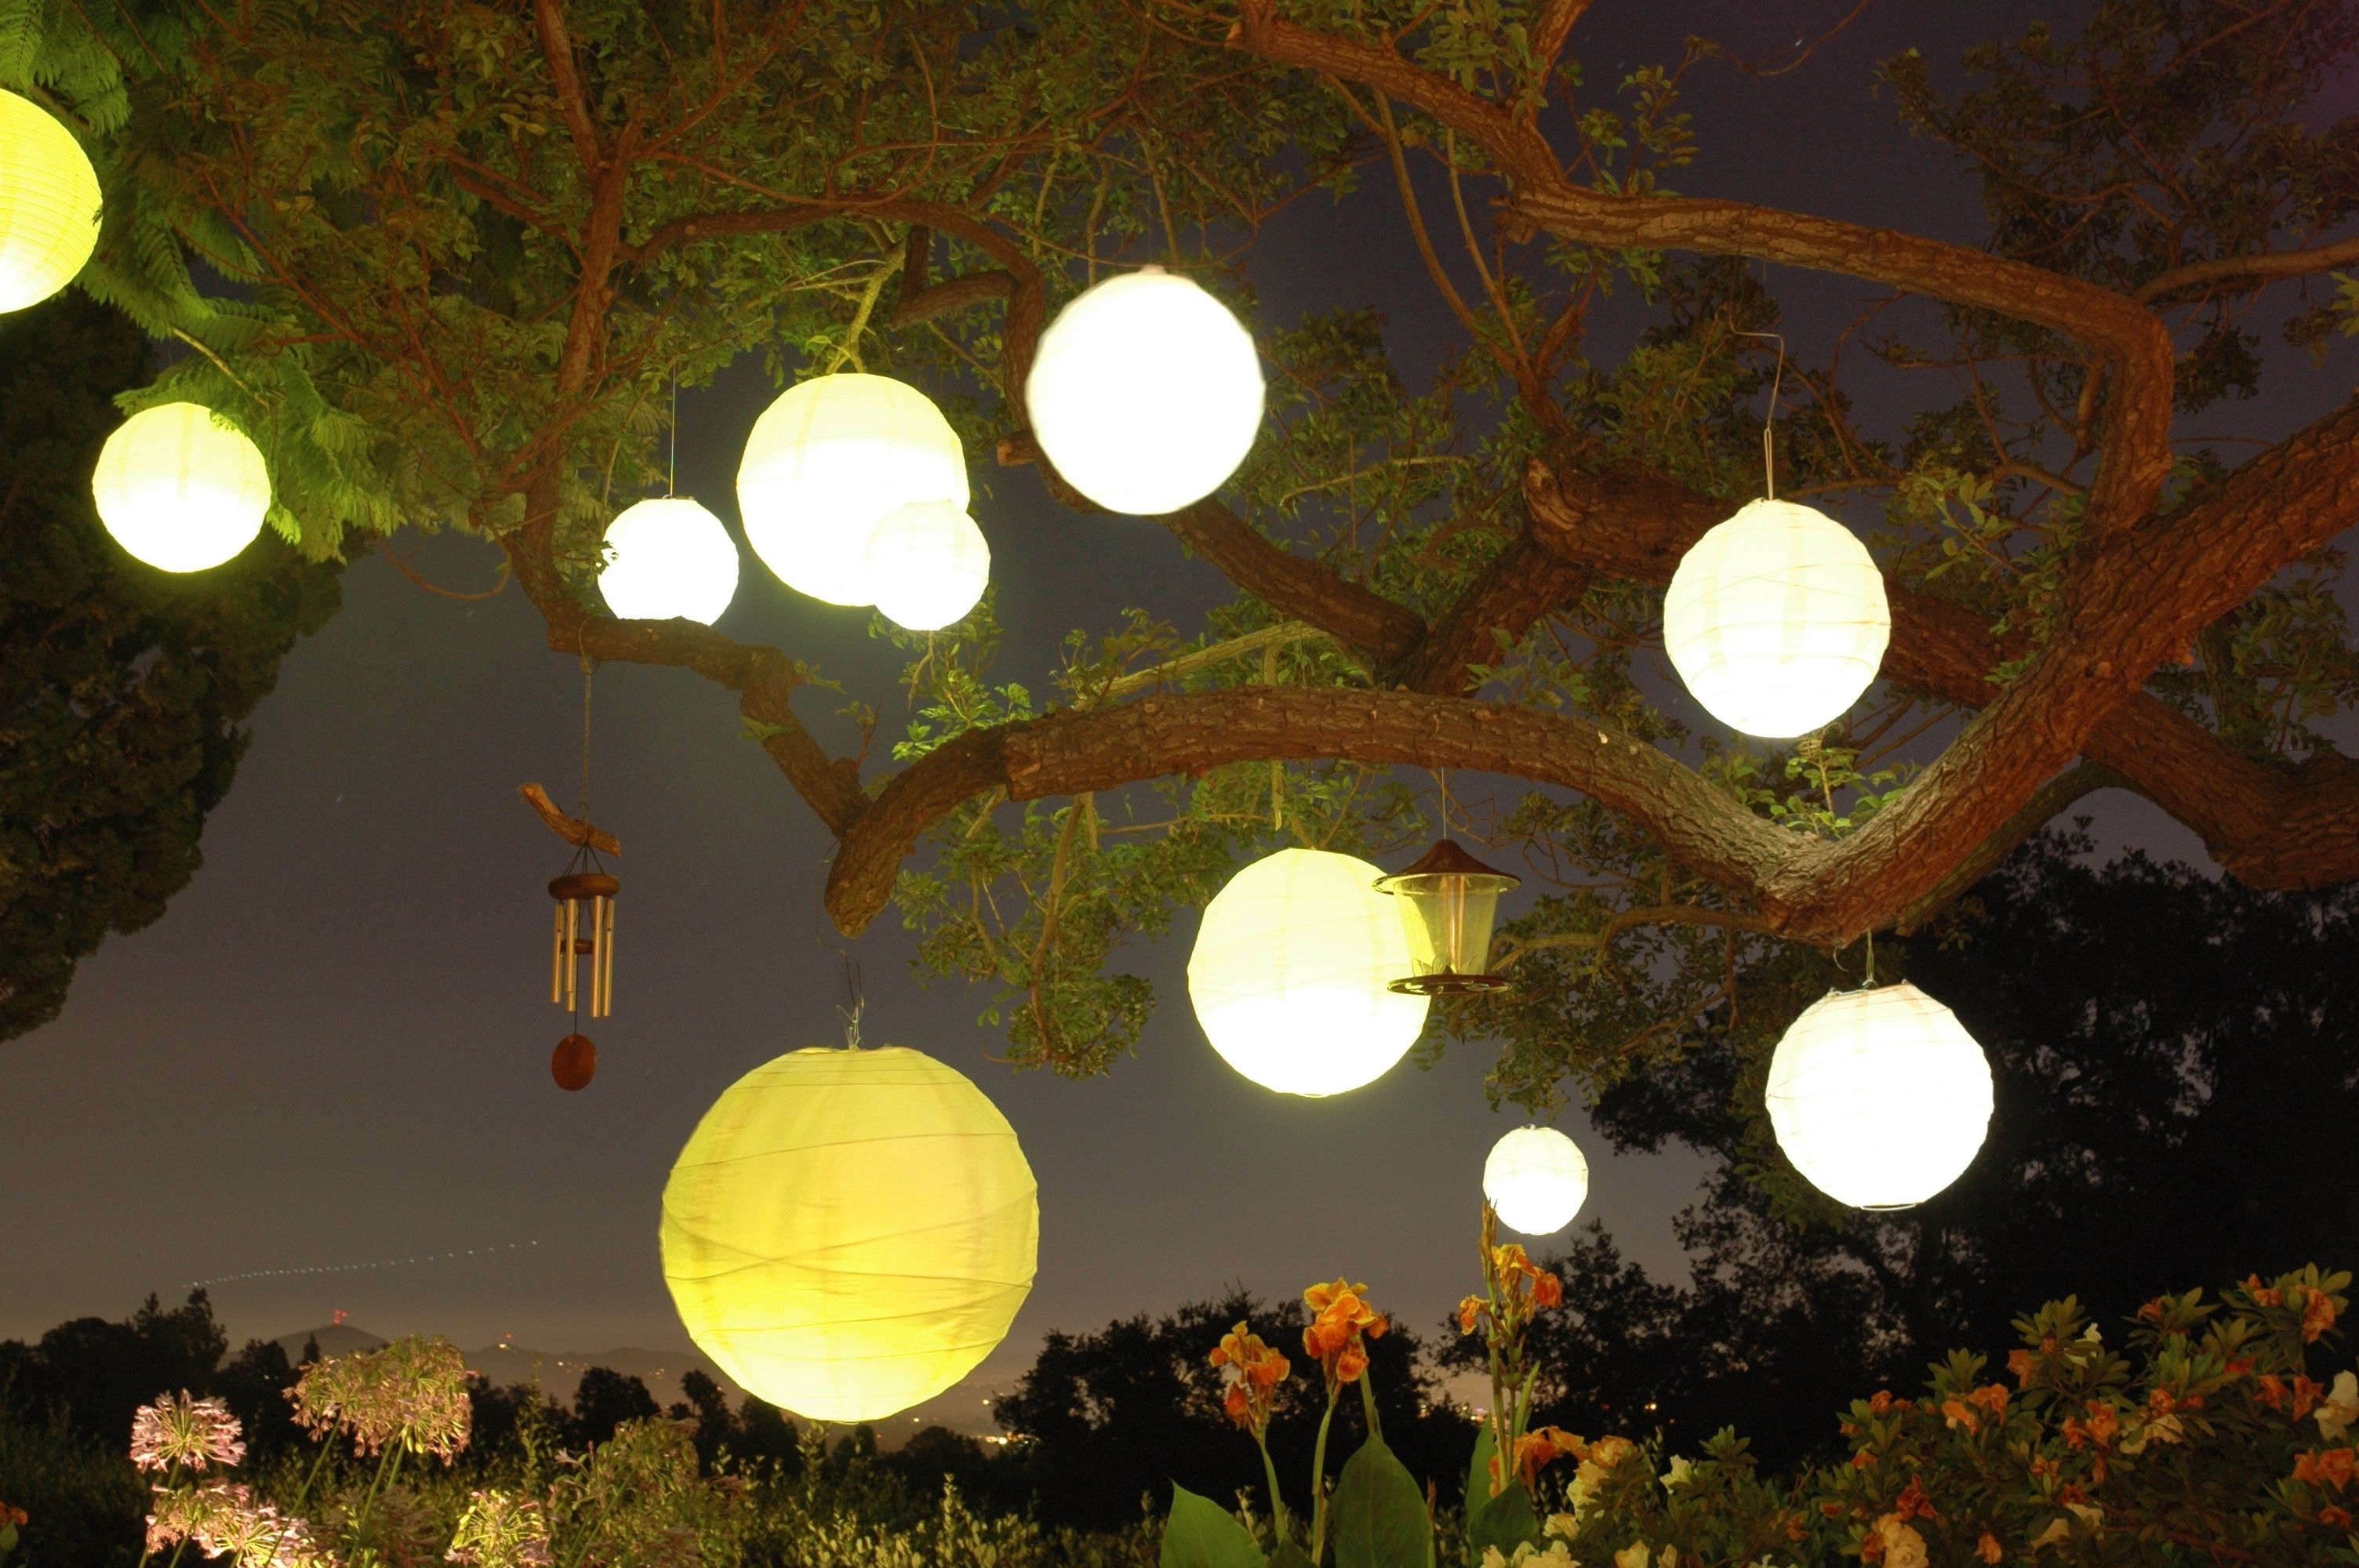 Outdoor Paper Lanterns With Regard To Current Divine Outdoor Lighting Via Paper Lanterns (Gallery 11 of 20)